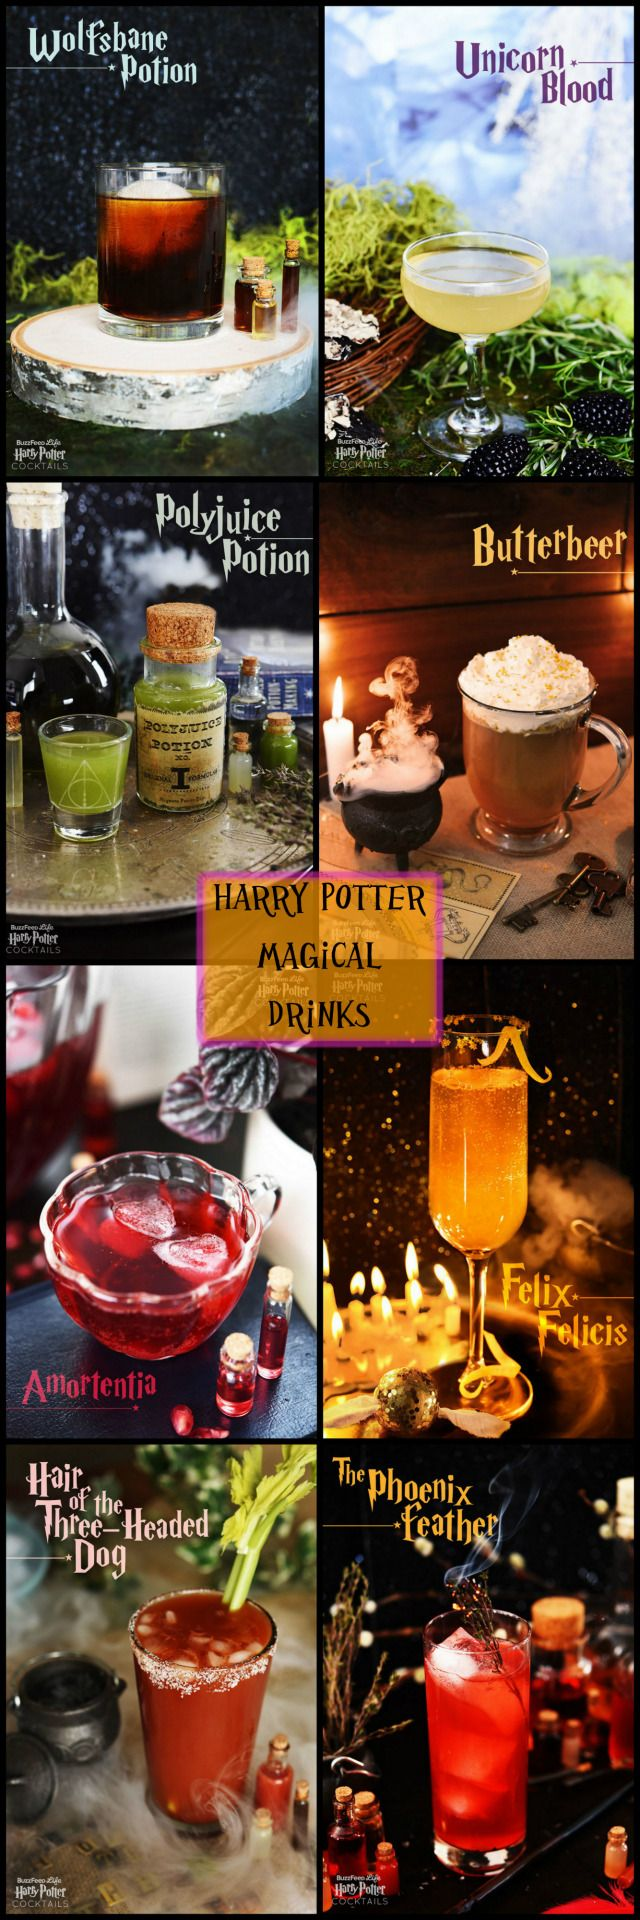 8 Magical Harry Potter Drink Recipes from Buzzfeed.All the recipes are in 1 place, so it's not your typical Buzzfeed roundup. These are alcoholic cocktails, although a few can be made virgin. • Wolfsbane Potion • Unicorn Blood • Polyjuice Potion •...